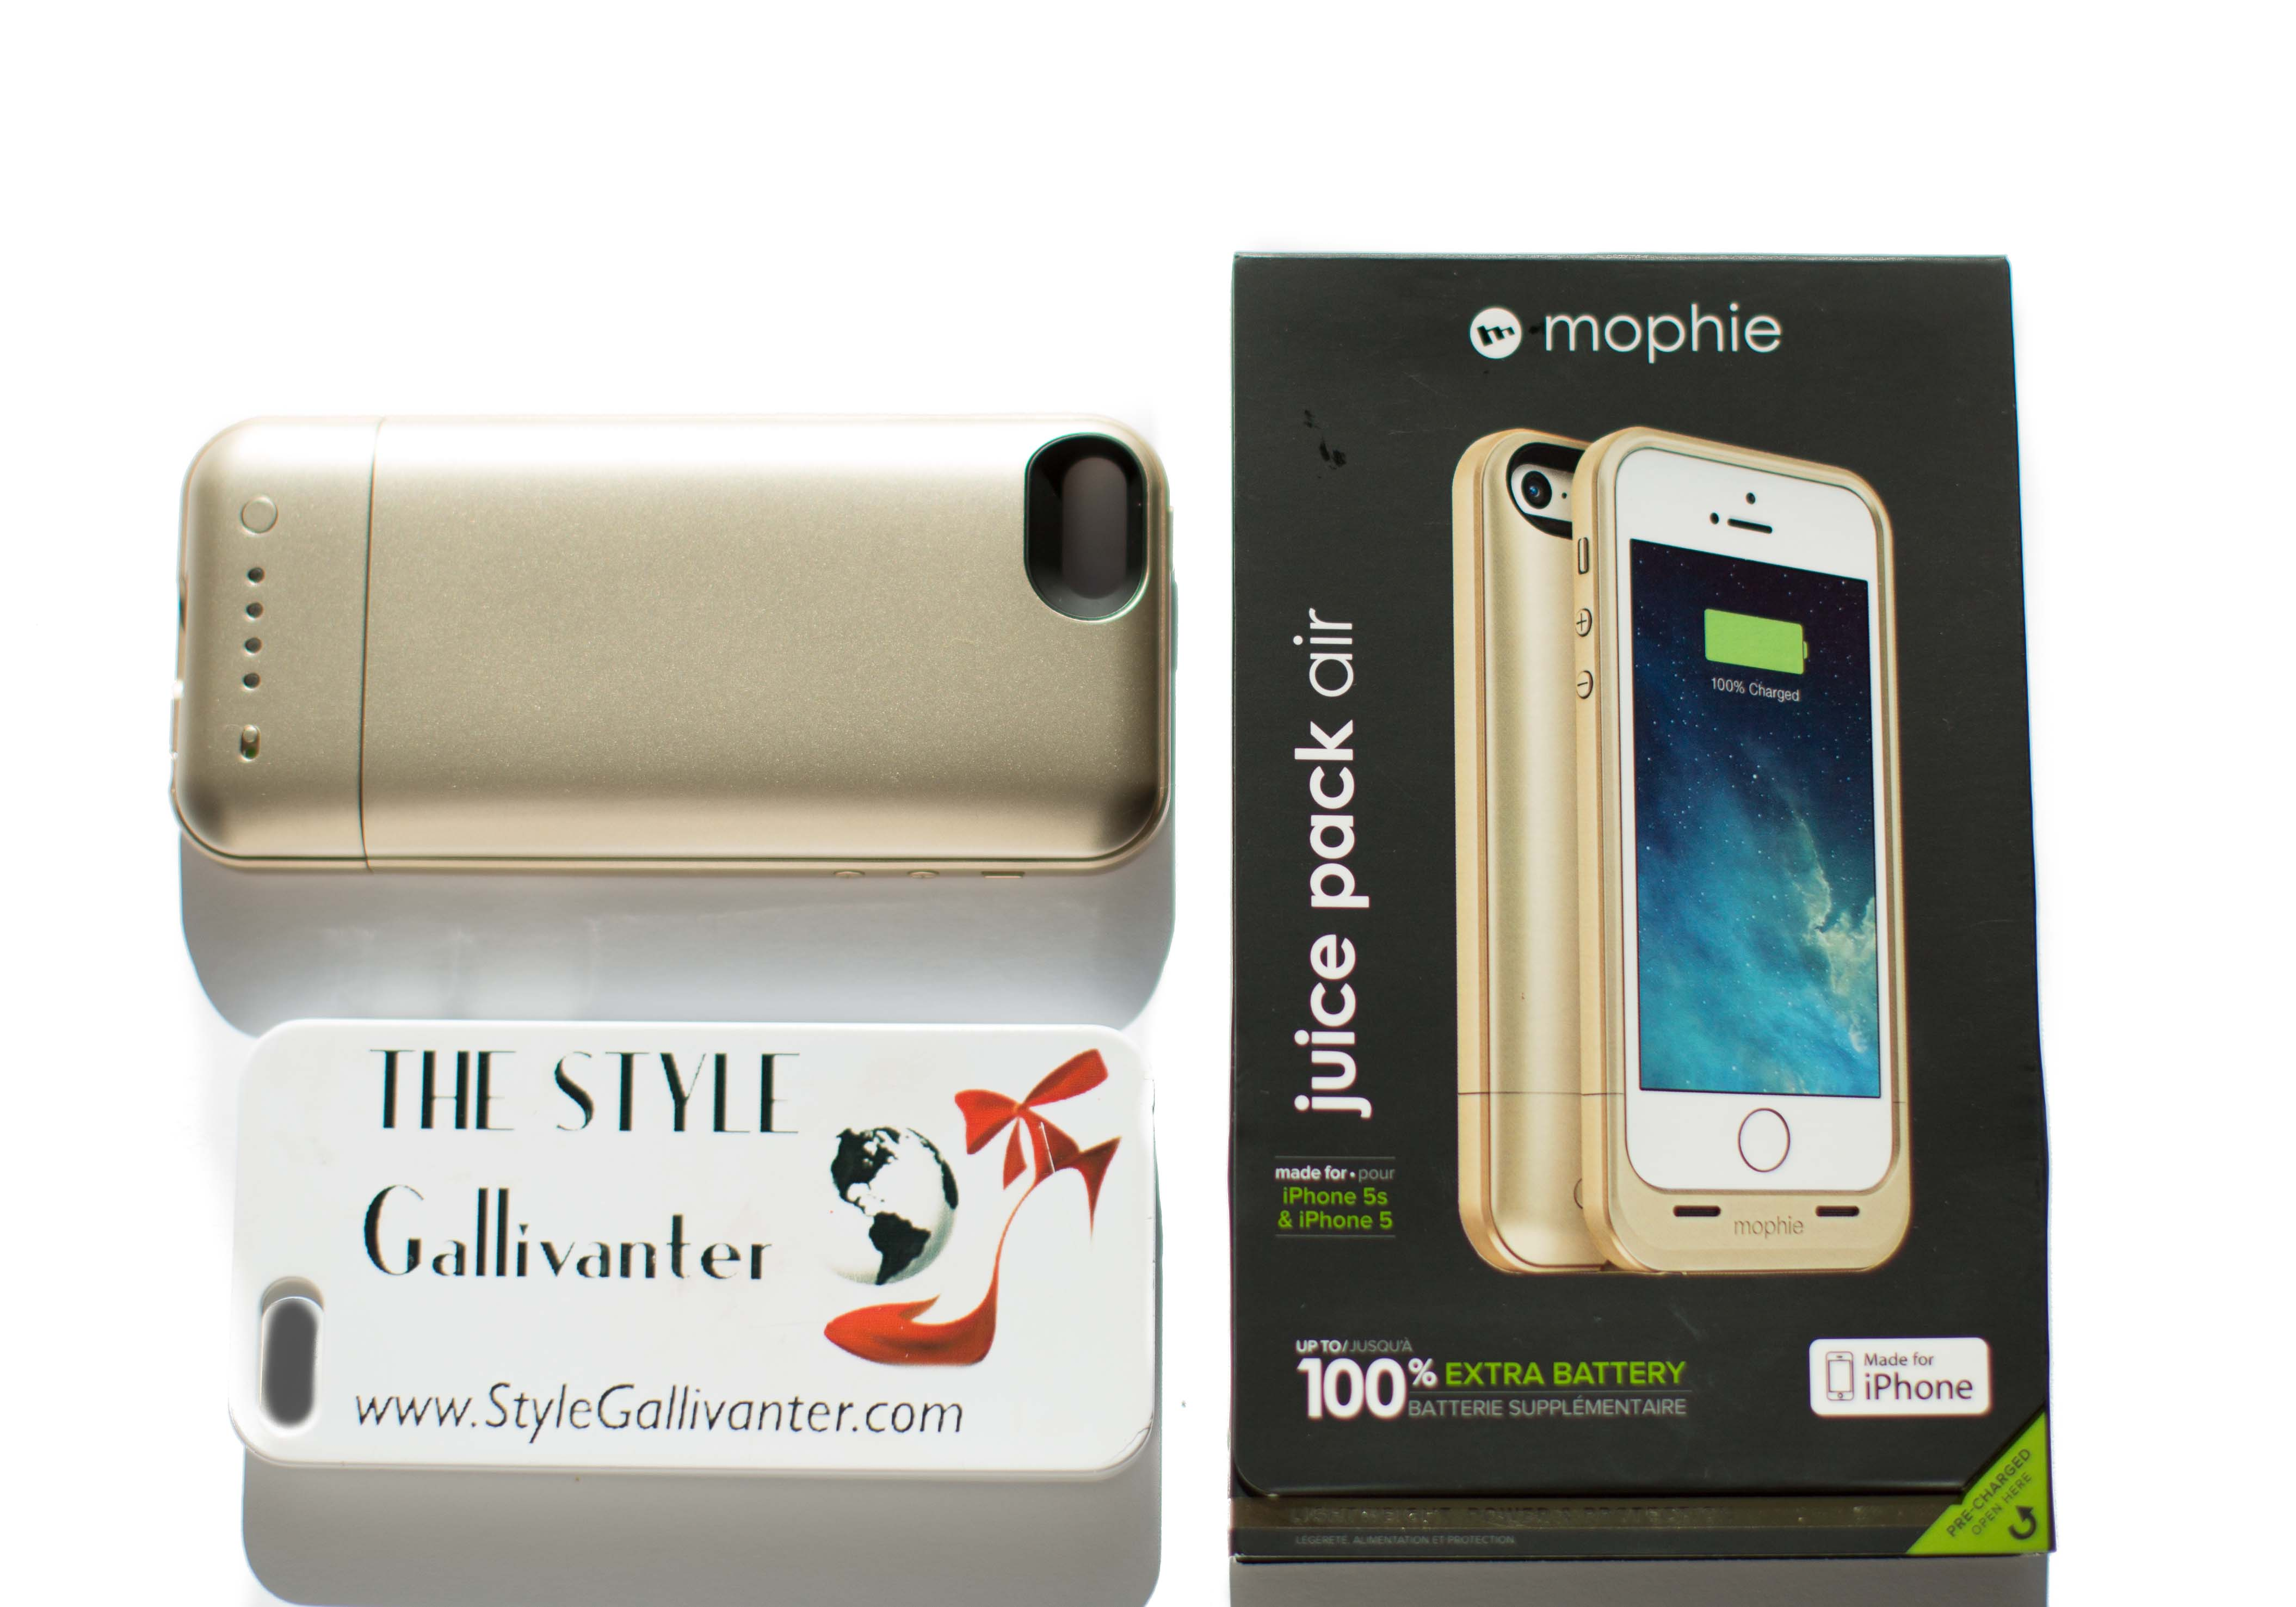 mophie-juice-pack-air_rechargeable-battery-cases_TOP-AFRICAN-BLOGGERS_BEST-FASHION-BLOGGERS-AFRICA_TOP-MUMMY-BLOGGERS-AUSTRALIA_BESPREGNANCY-FASHION-EDITORIALS_TOP-NATURAL-HAIR-MODELS-AUSTRALIA-39